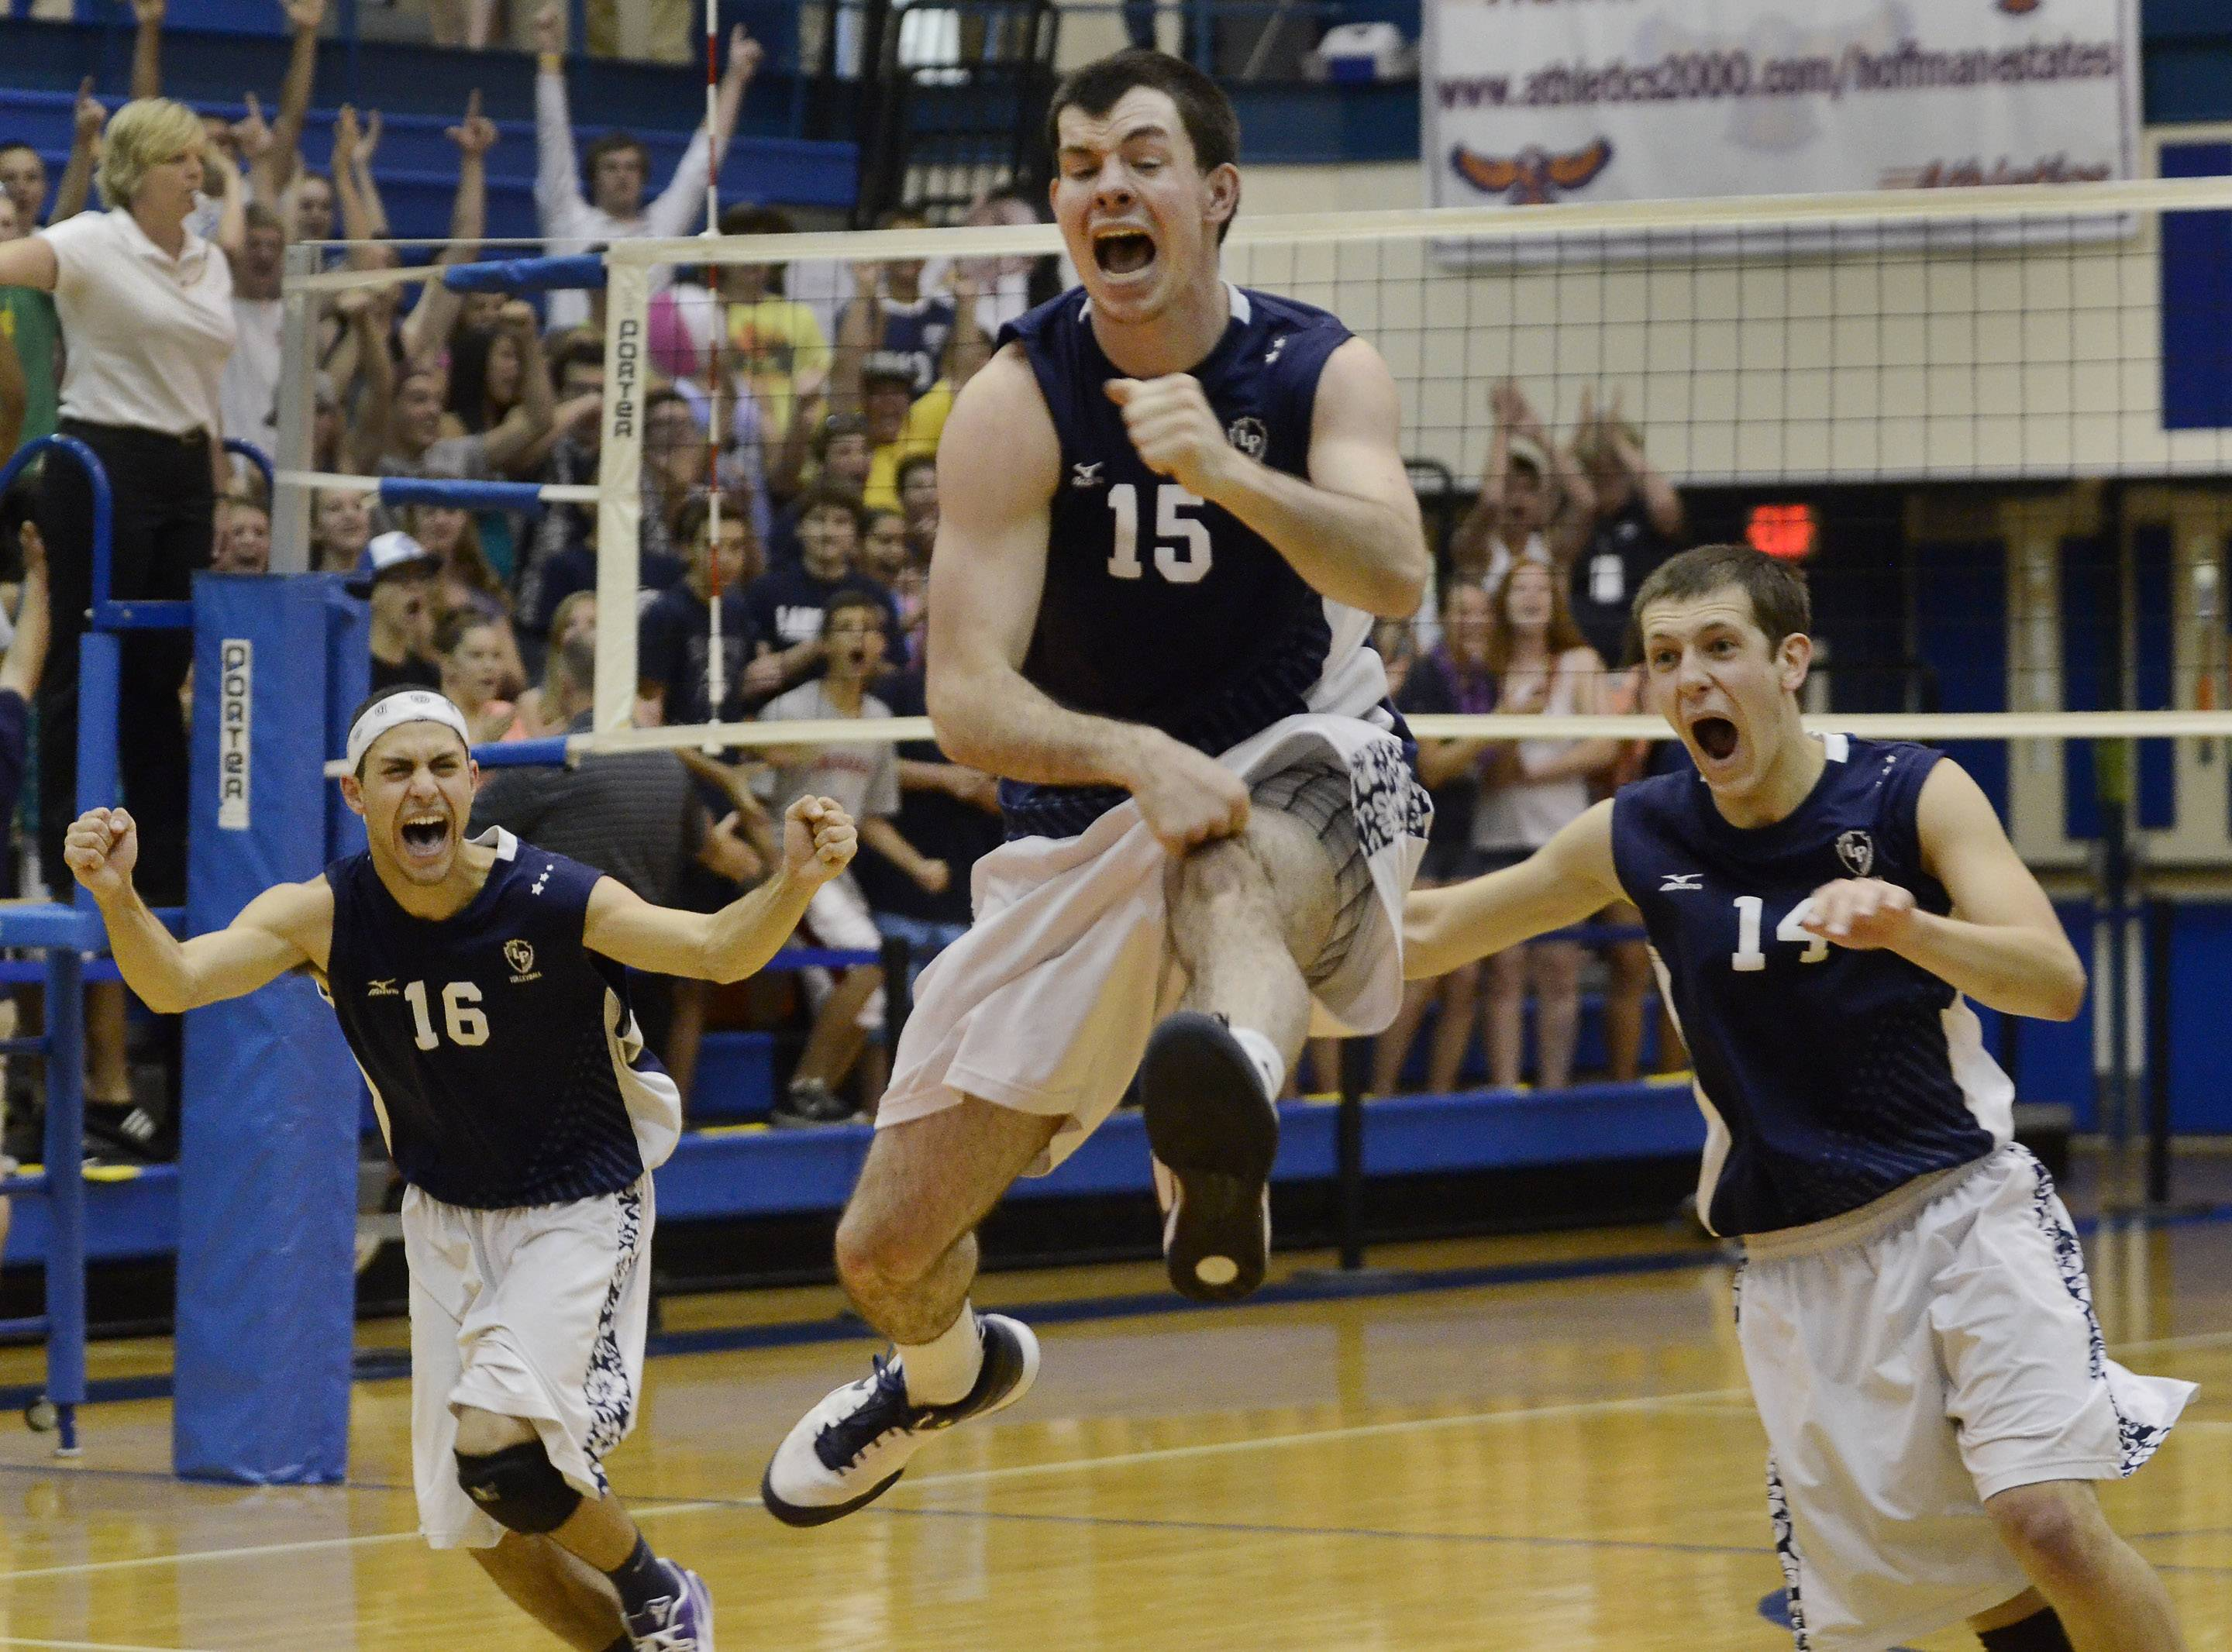 Lake Park's Sean Moore celebrates with teammates Dominick Terry and Jeff Yost after defeating New Trier in the boys volleyball state tournament quarterfinal Friday.